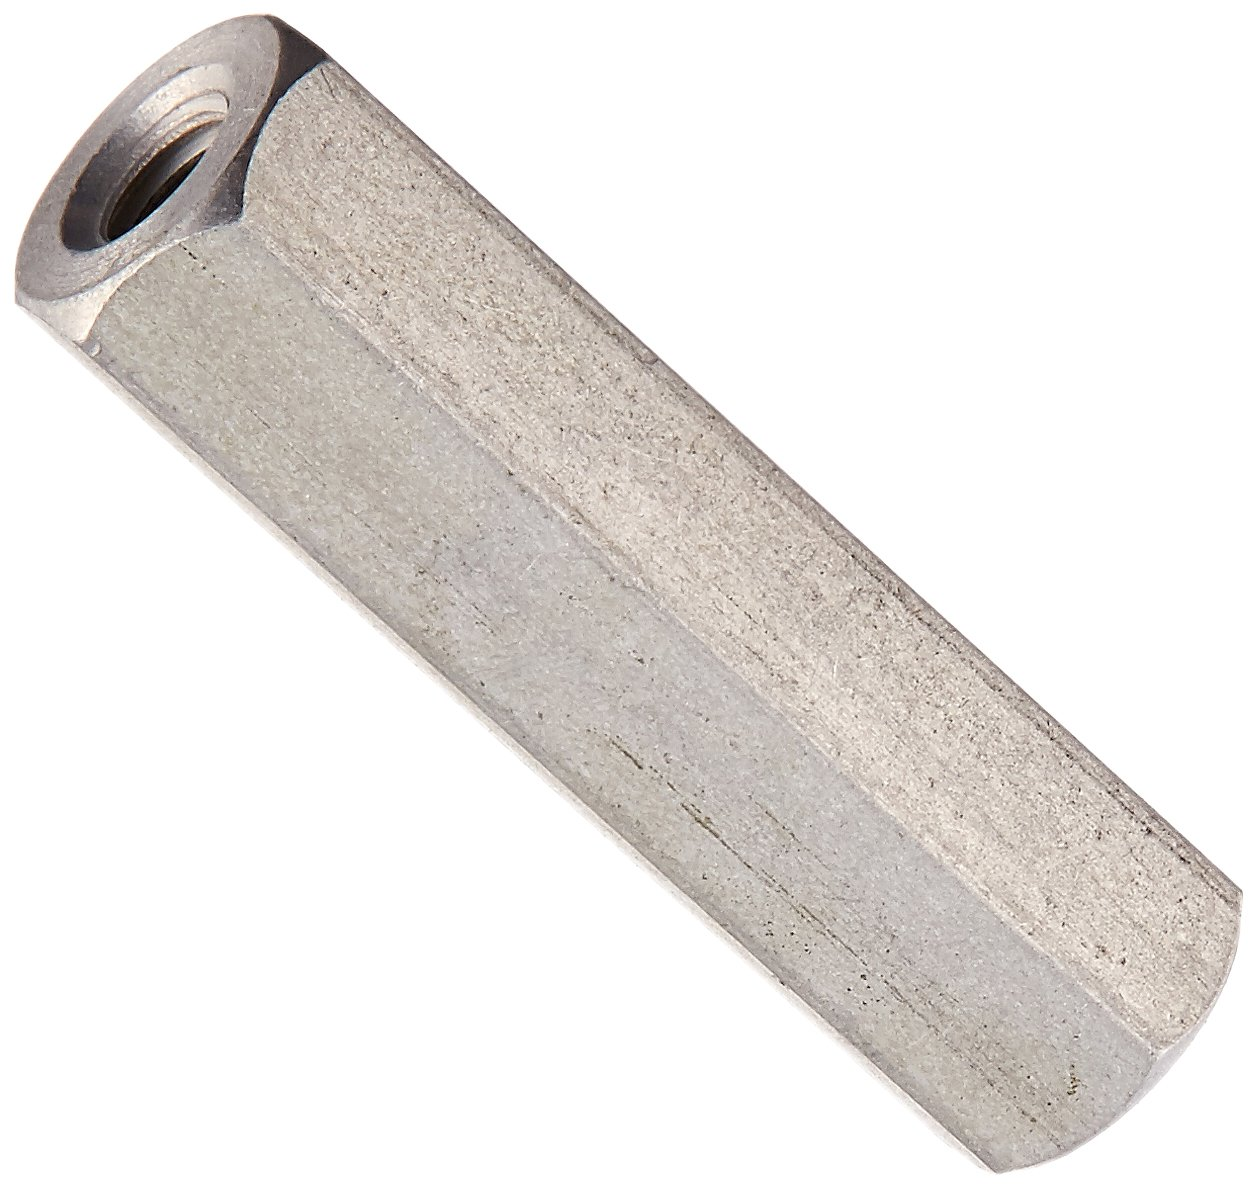 Stainless Steel M6-1 Screw Size Pack of 5 Female Lyn-Tron 22mm Length, 13mm OD